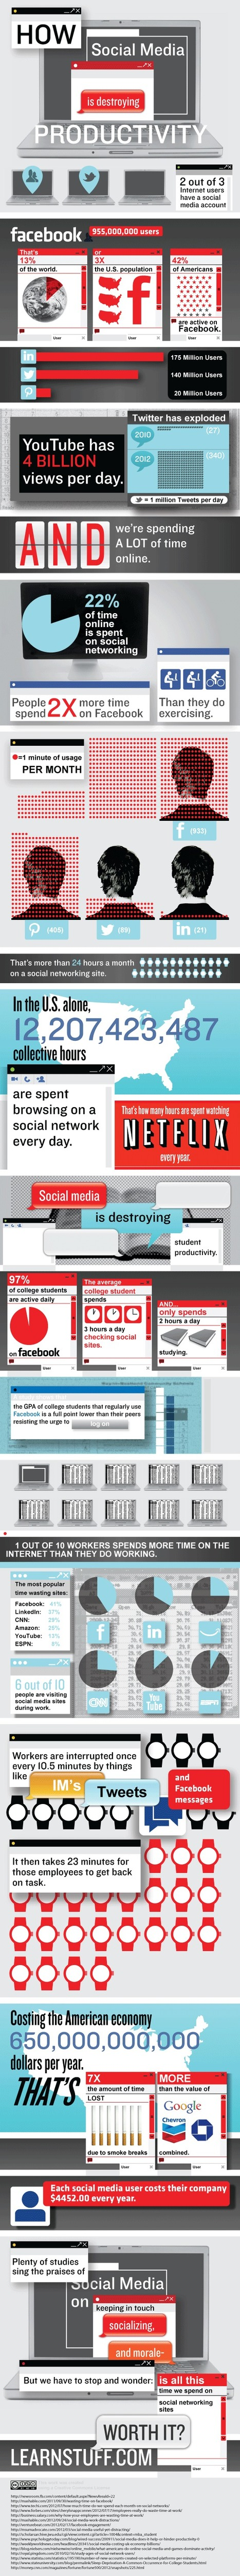 Social Media at Work [Infographic] | AtDotCom Social media | Scoop.it